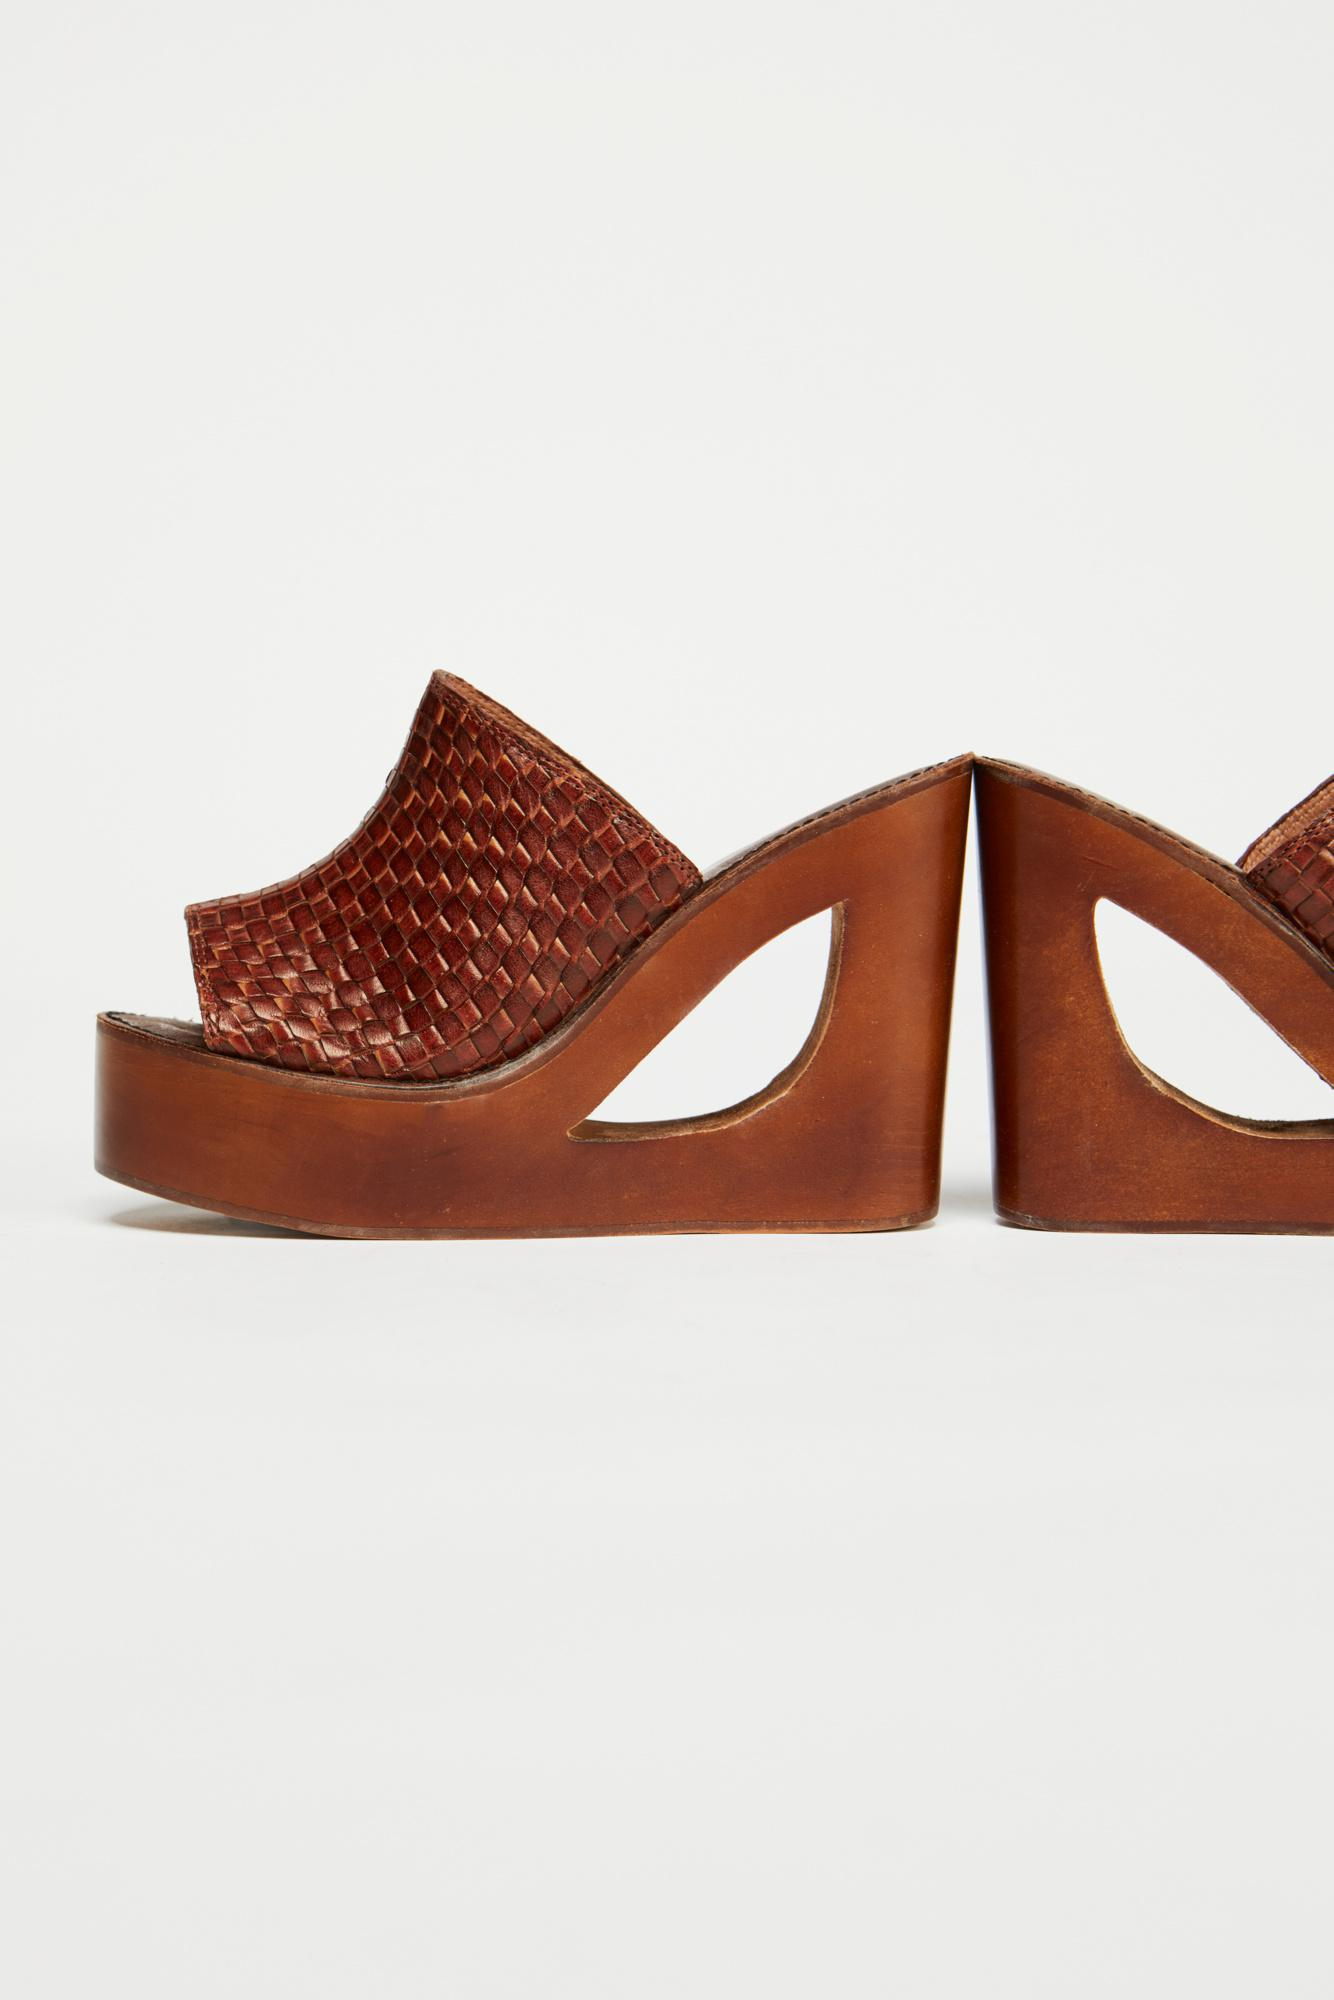 b12e21cebdb0 Lyst - Free People Barela Platform Wedge By Jeffrey Campbell in Brown